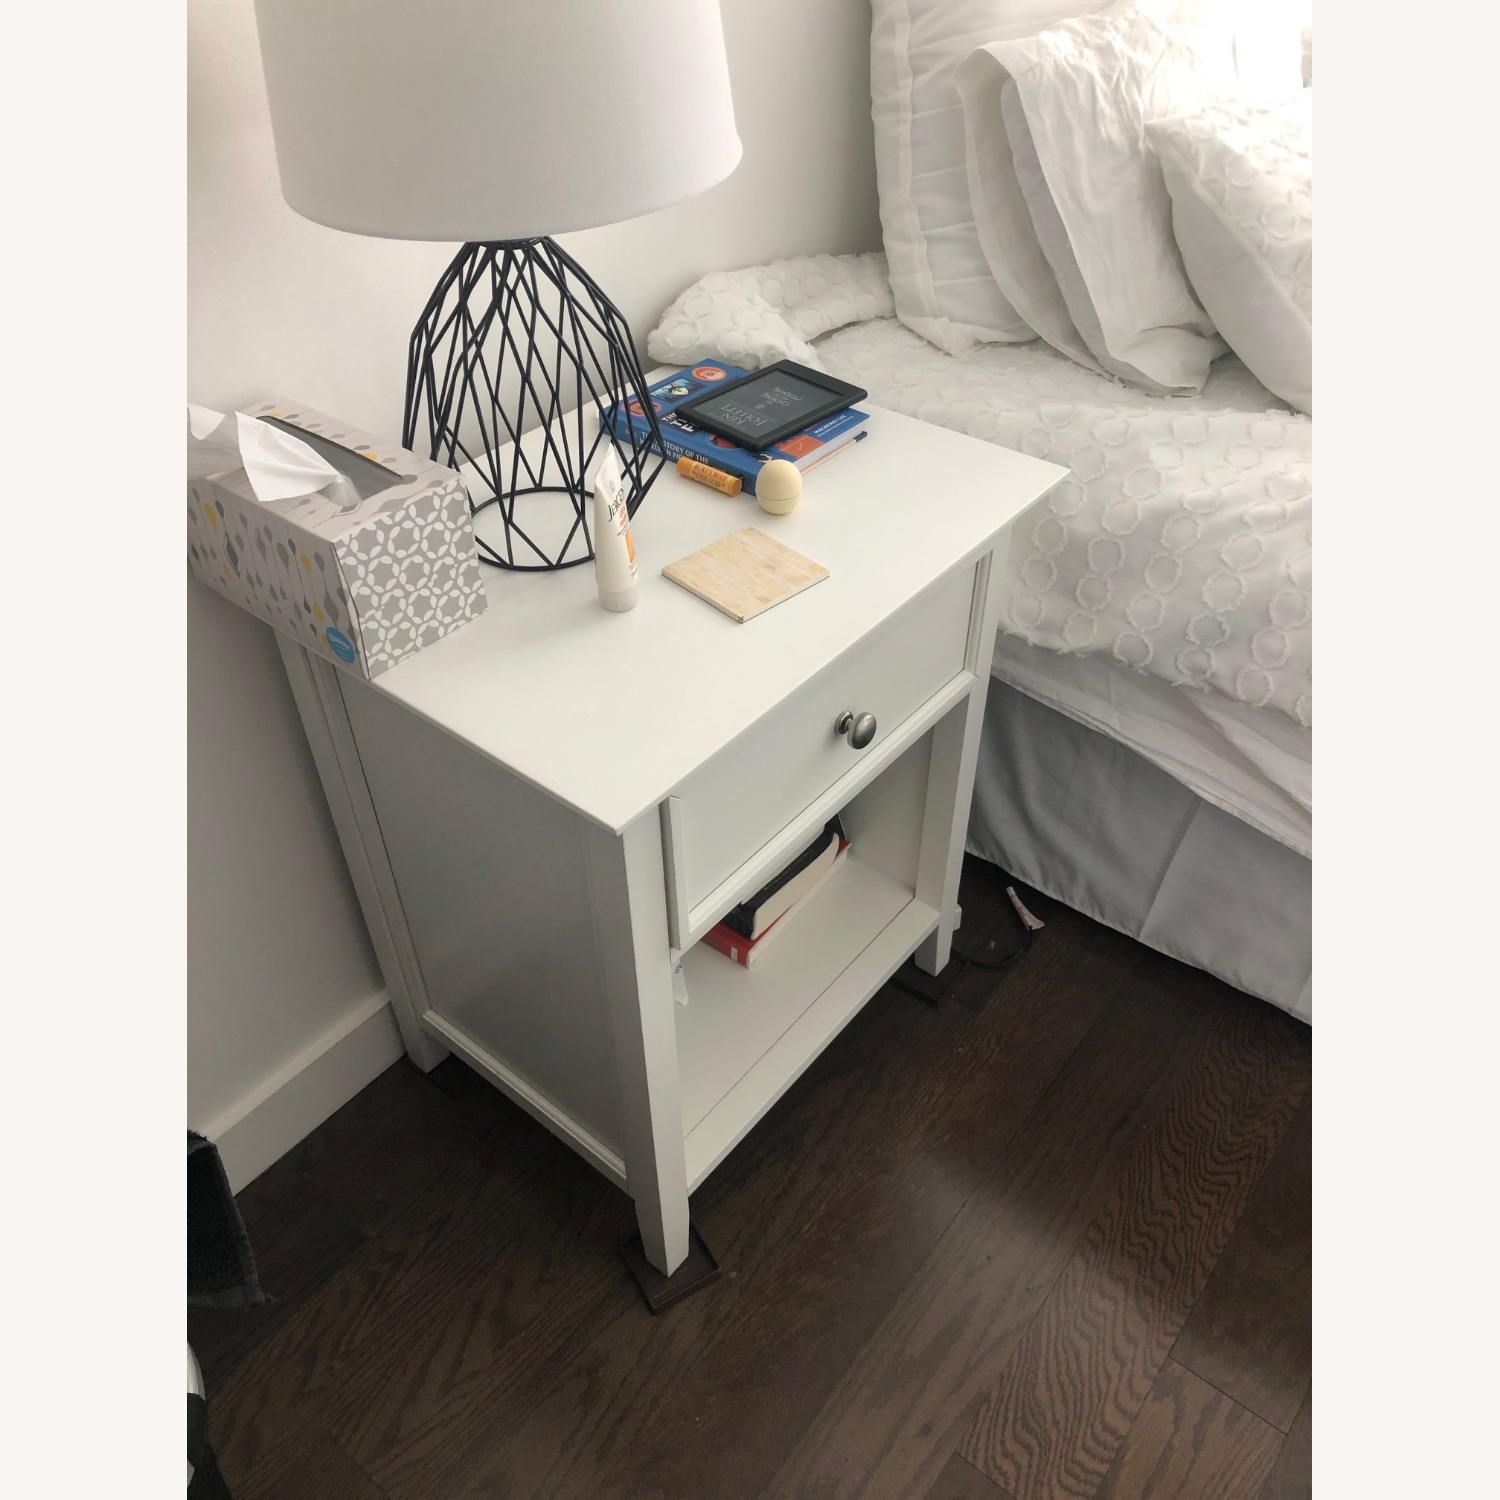 Mealey's Furniture White Wood End Table set (2) - image-4